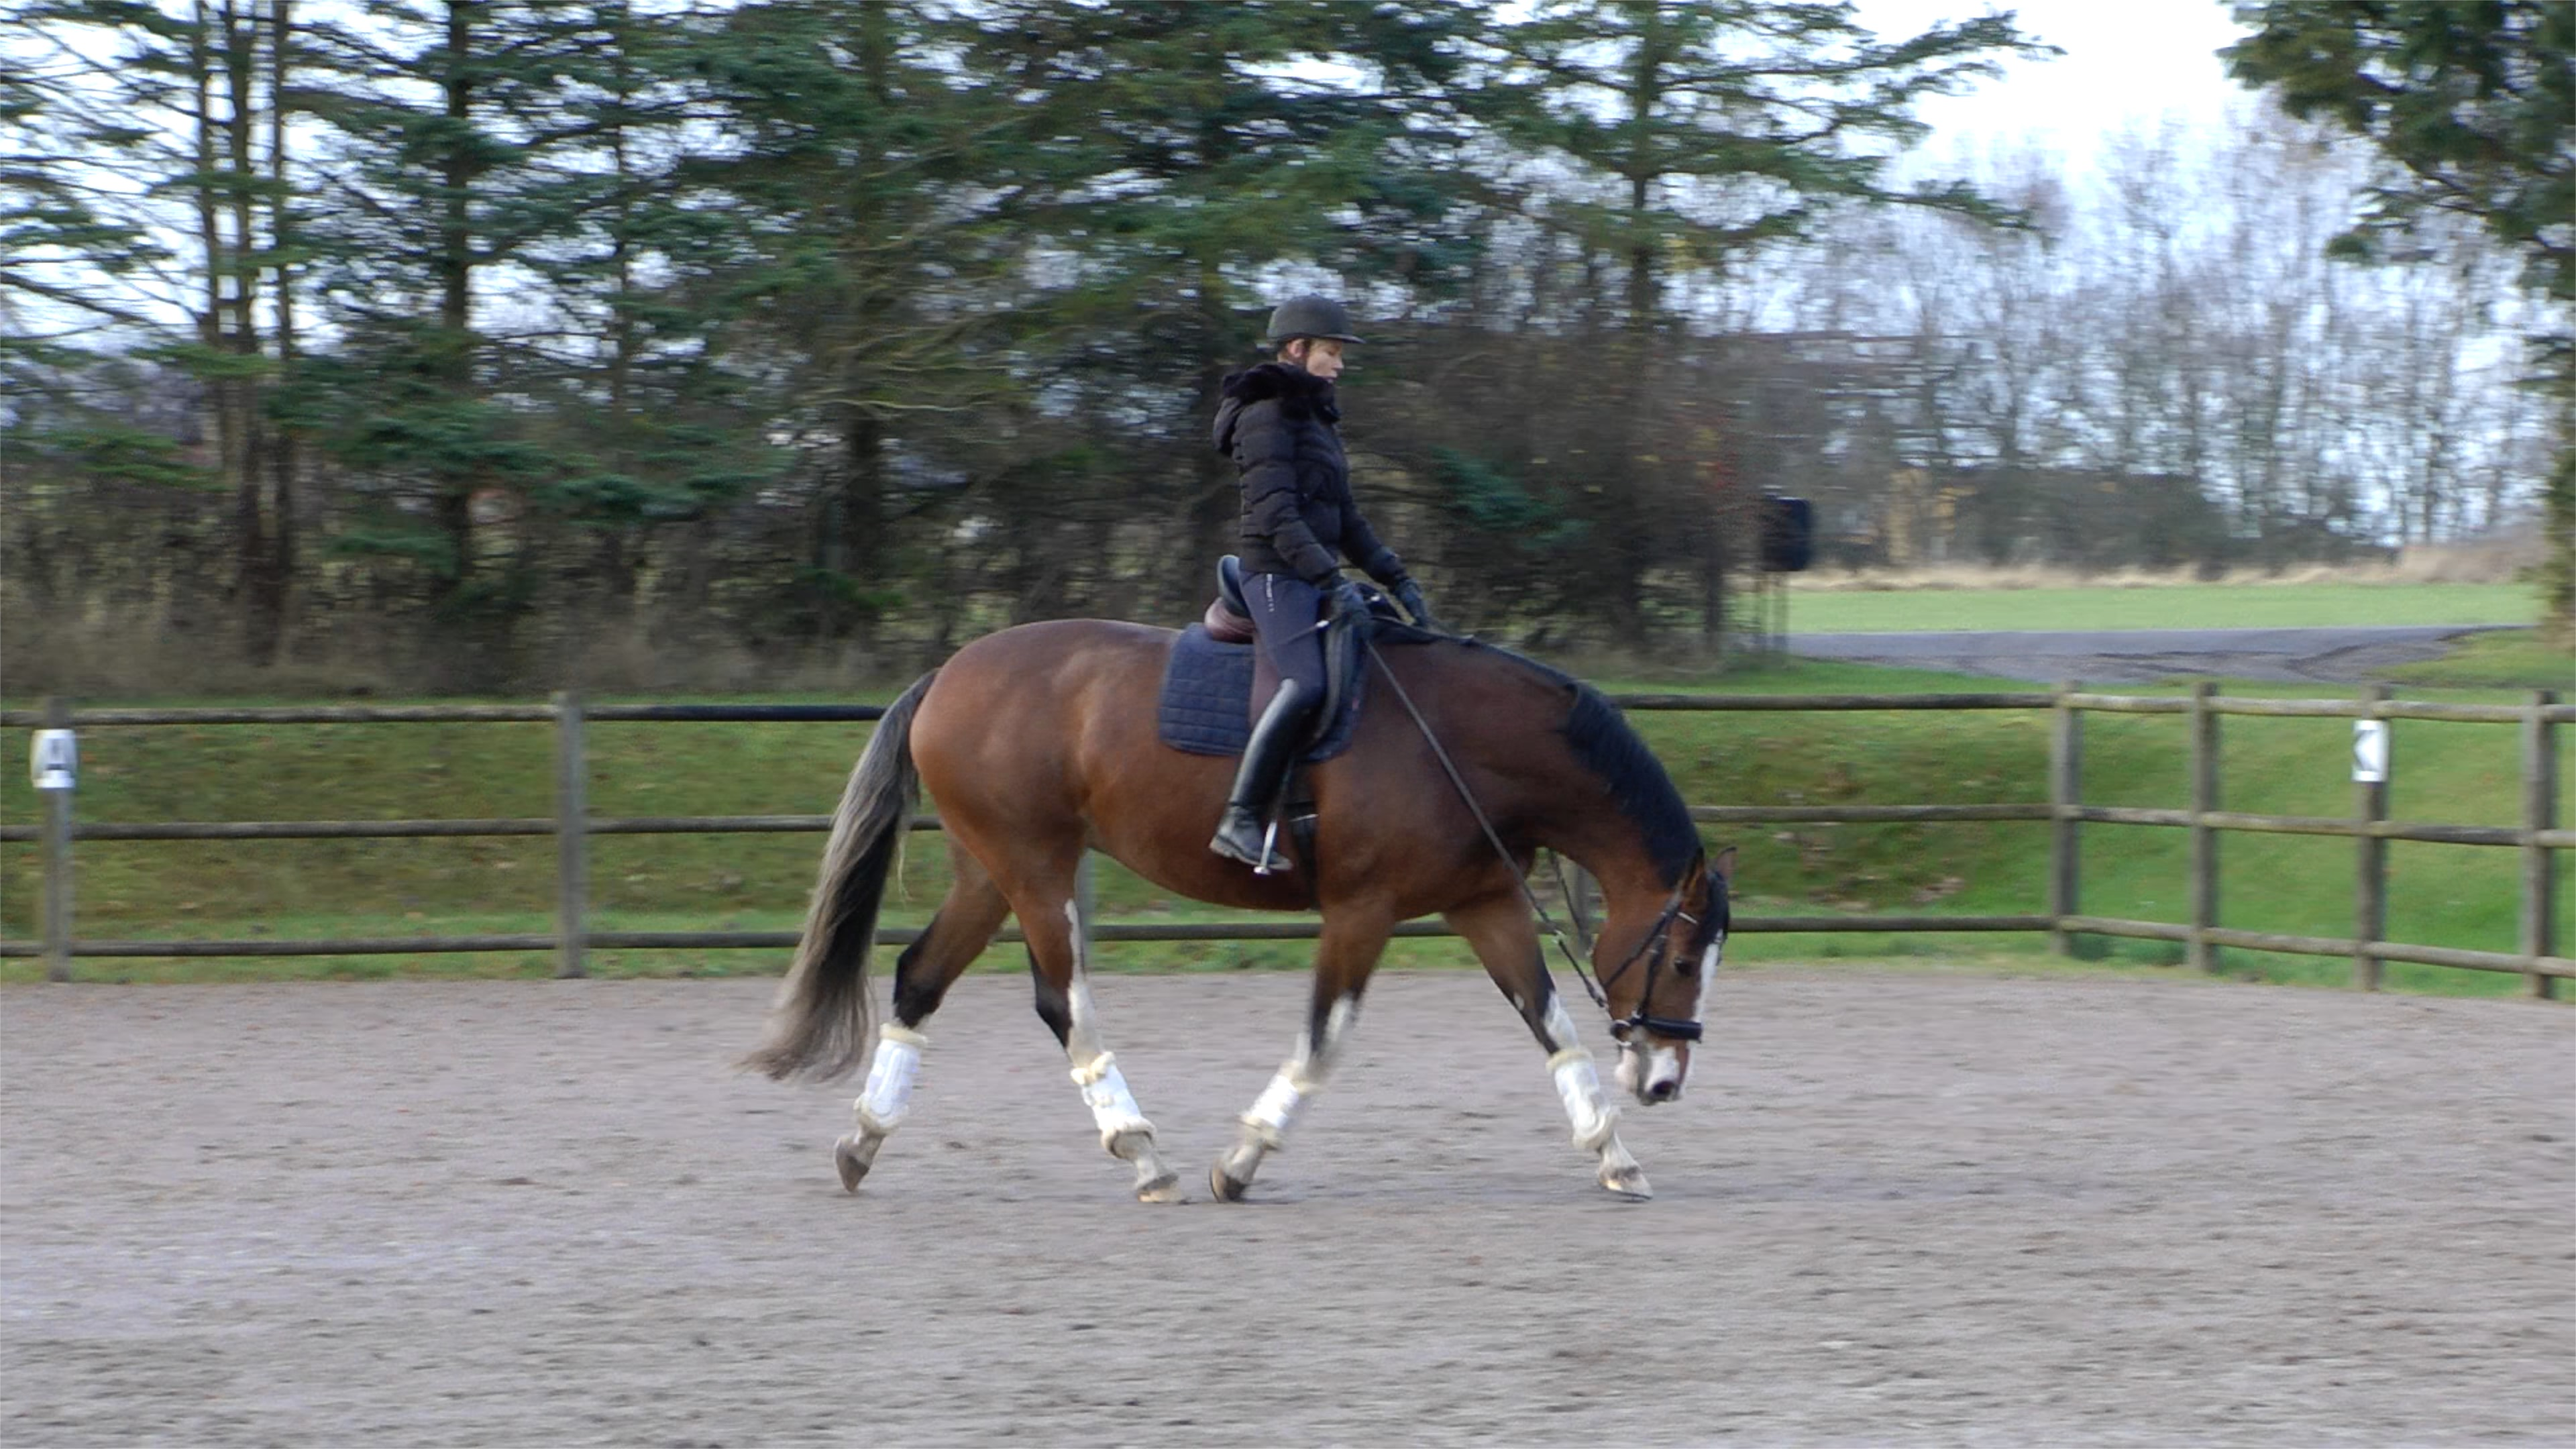 Here you can see Stacia in trot. She stretches well below knee height, but is still not very much on the forehand.